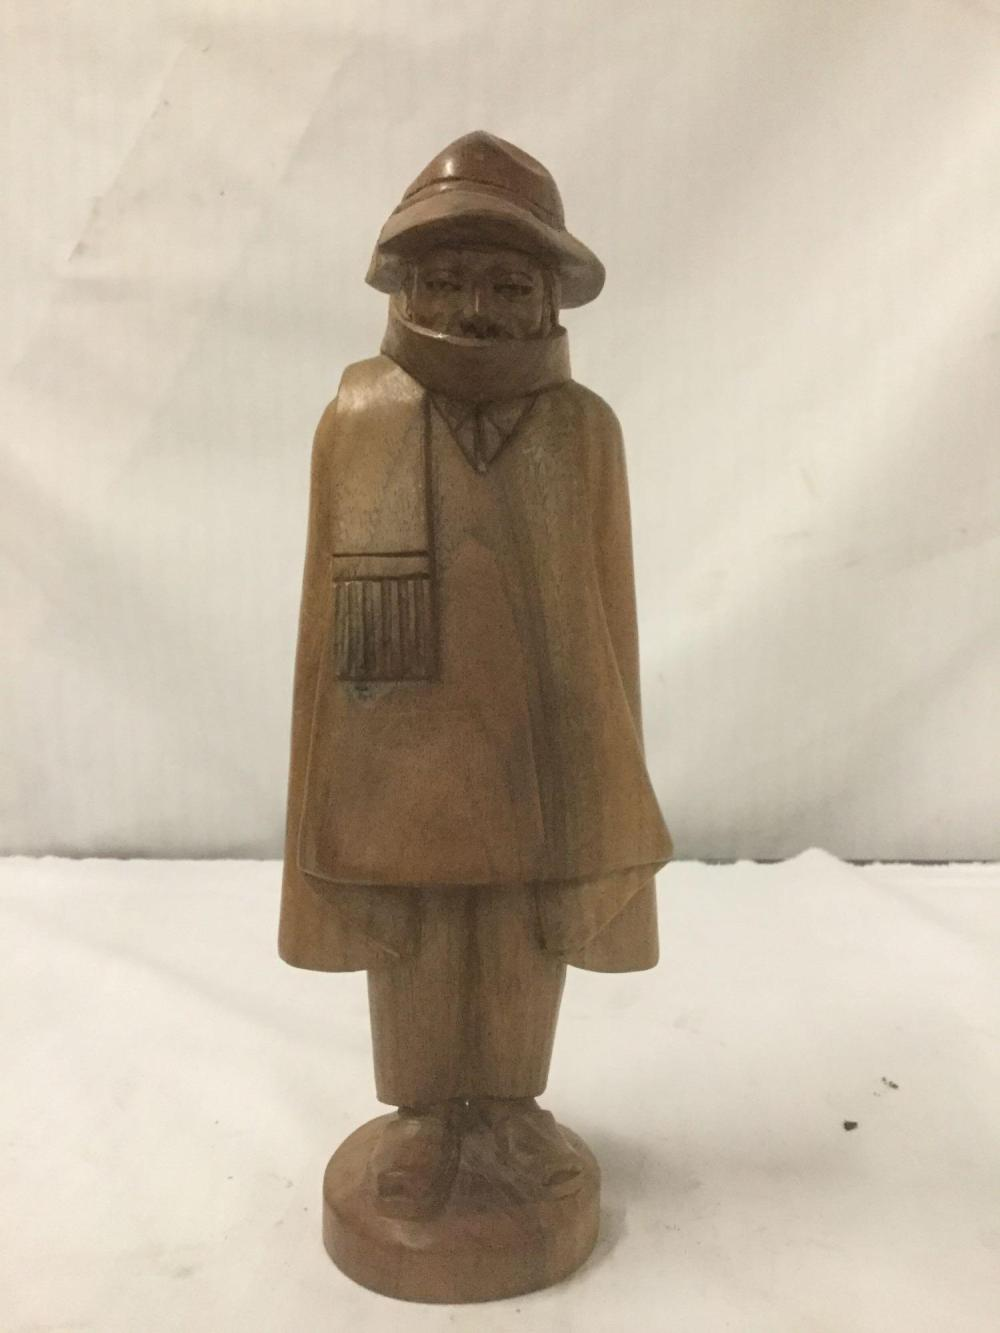 Hand carved wood statue of man with scarf. Marked G.A. 300 dollars 11 - Has chip in hat